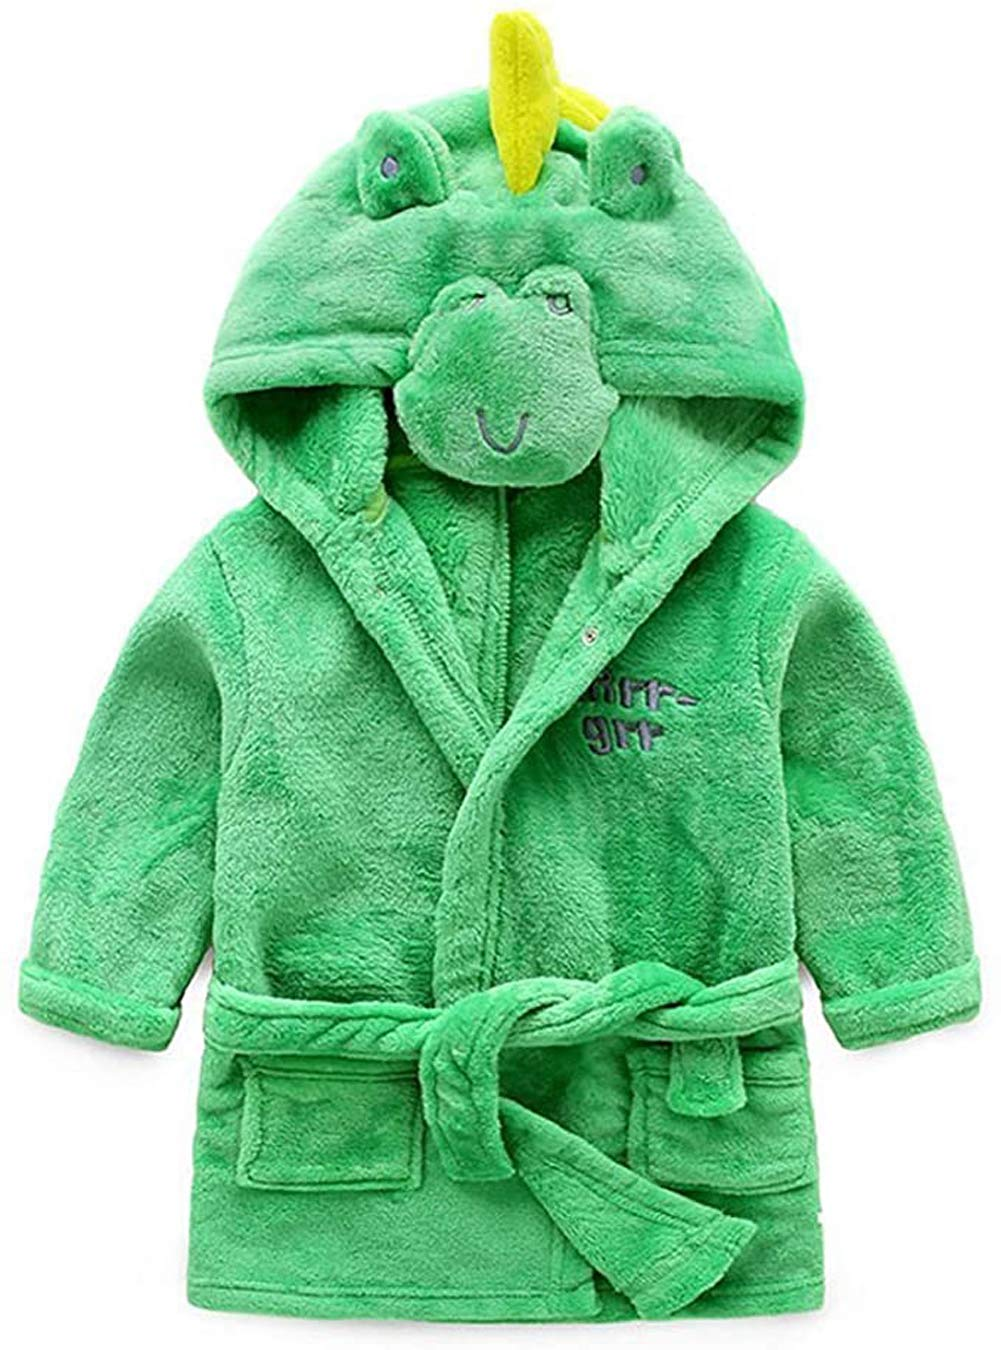 Image of Fun Green Dinosaur Robe For Boys, Toddlers and Infants